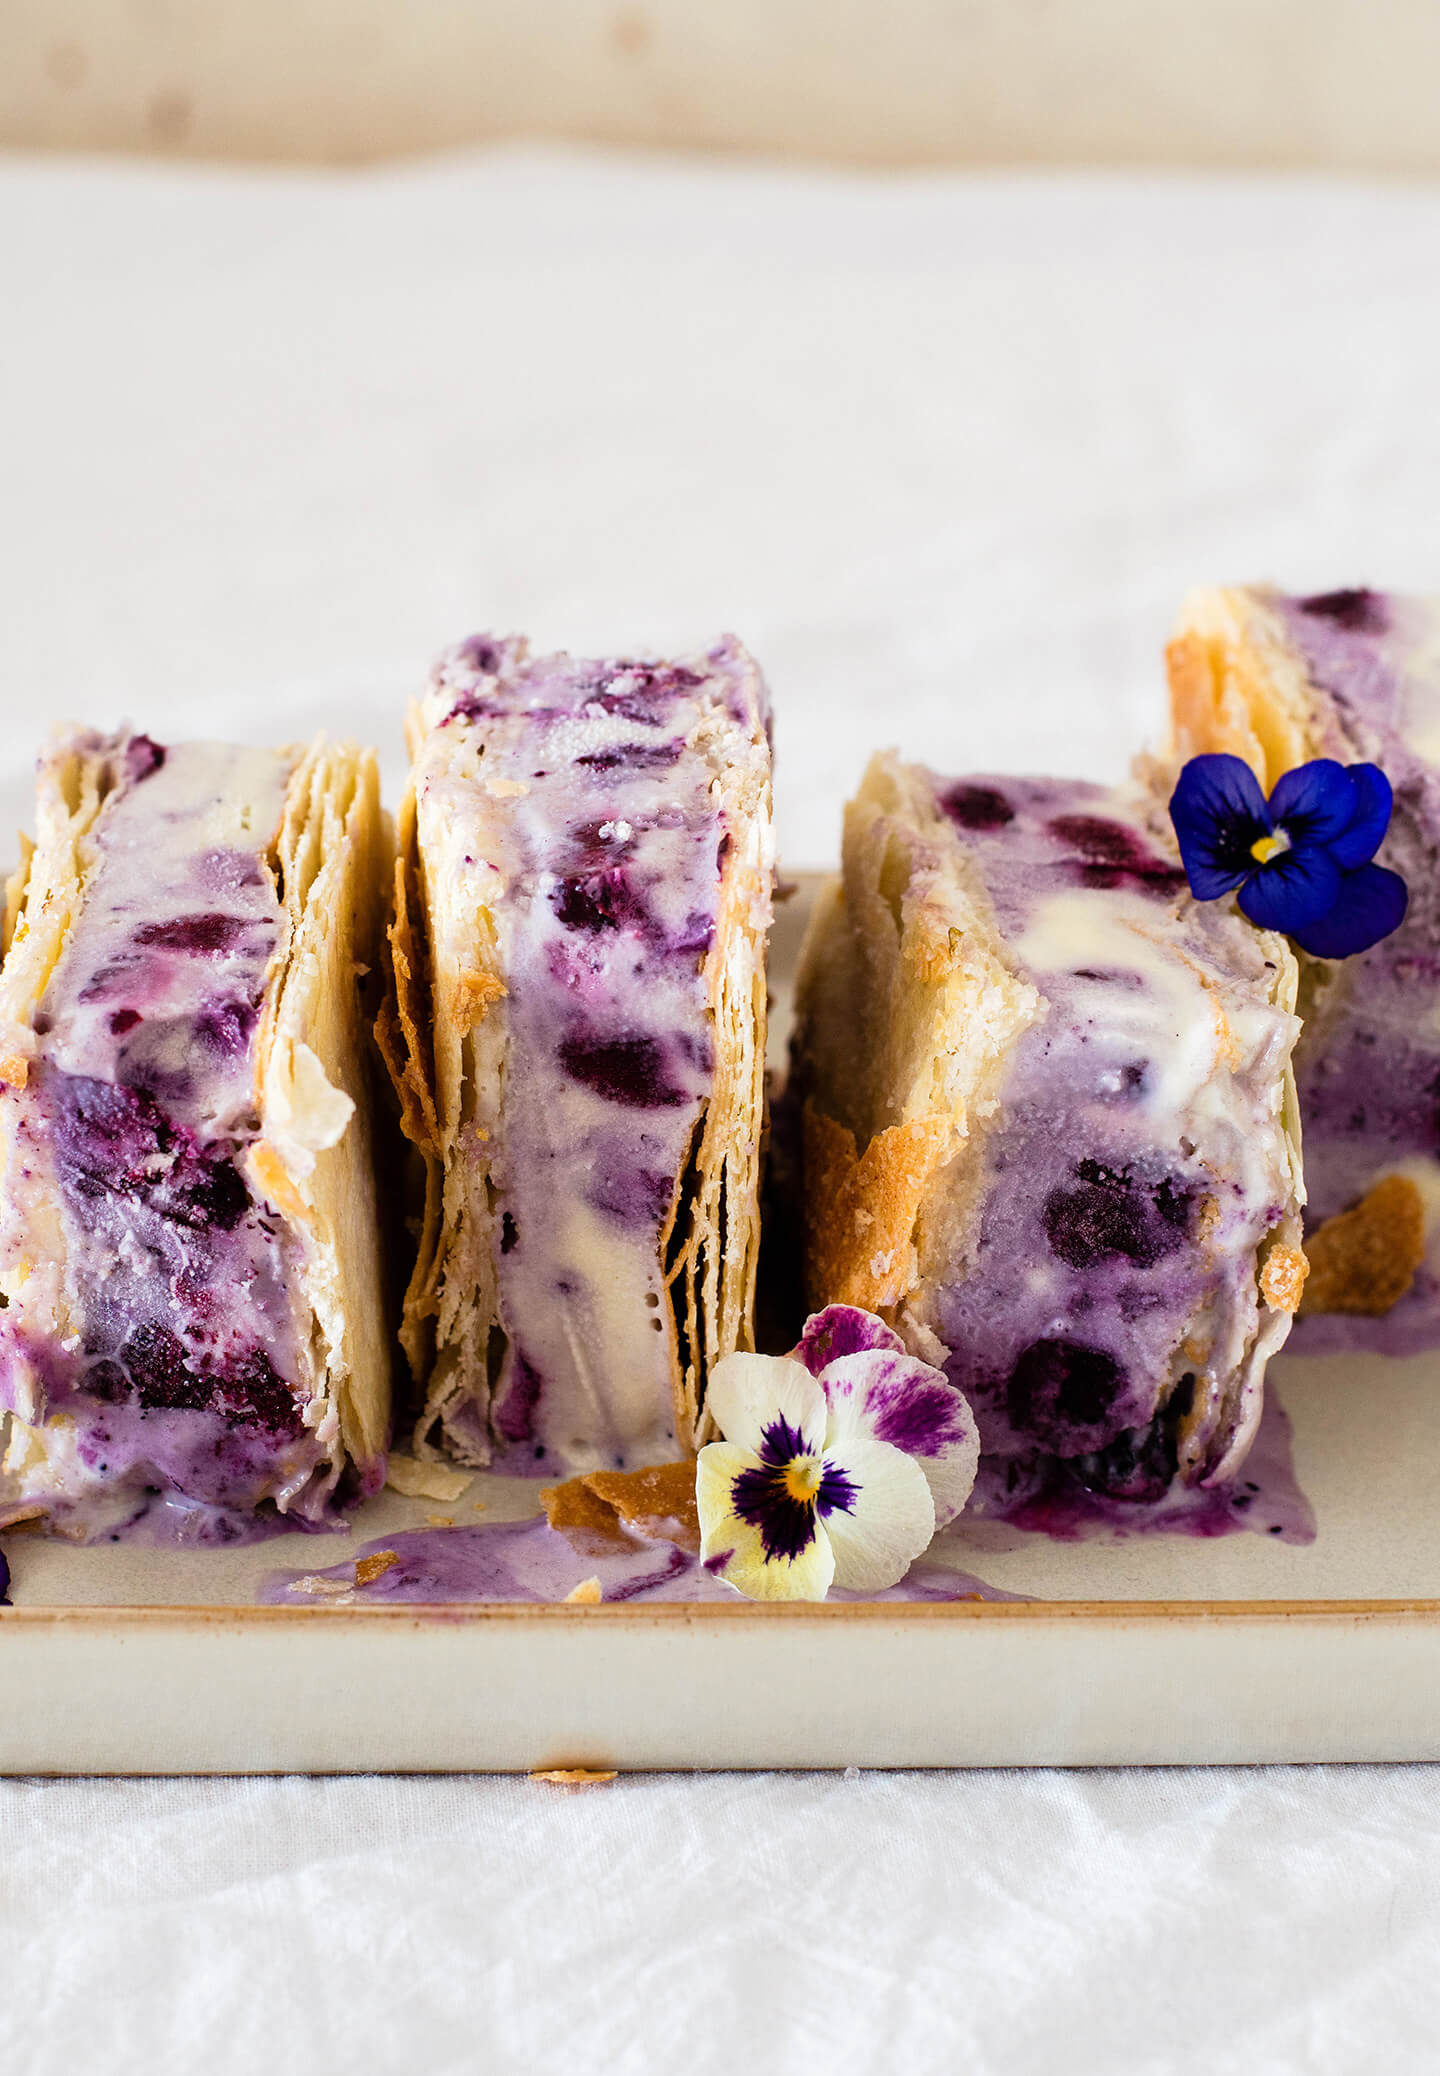 Roasted blueberry phyllo ice cream sandwiches are the perfect summer treat! Pretty to look at and tasty, filled with berries and lime sugar!